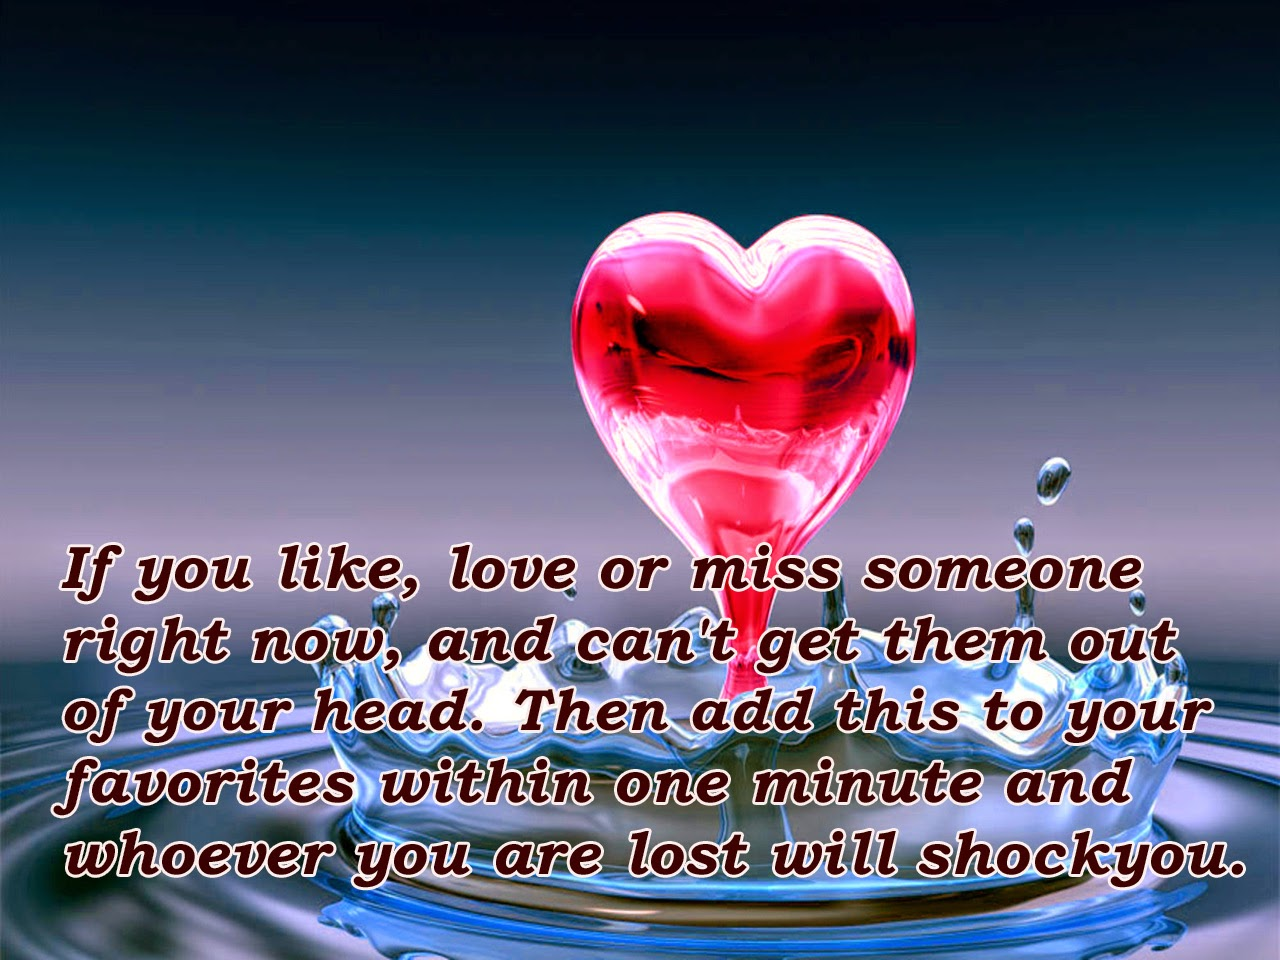 """If you like love or miss someone right now and can t them"